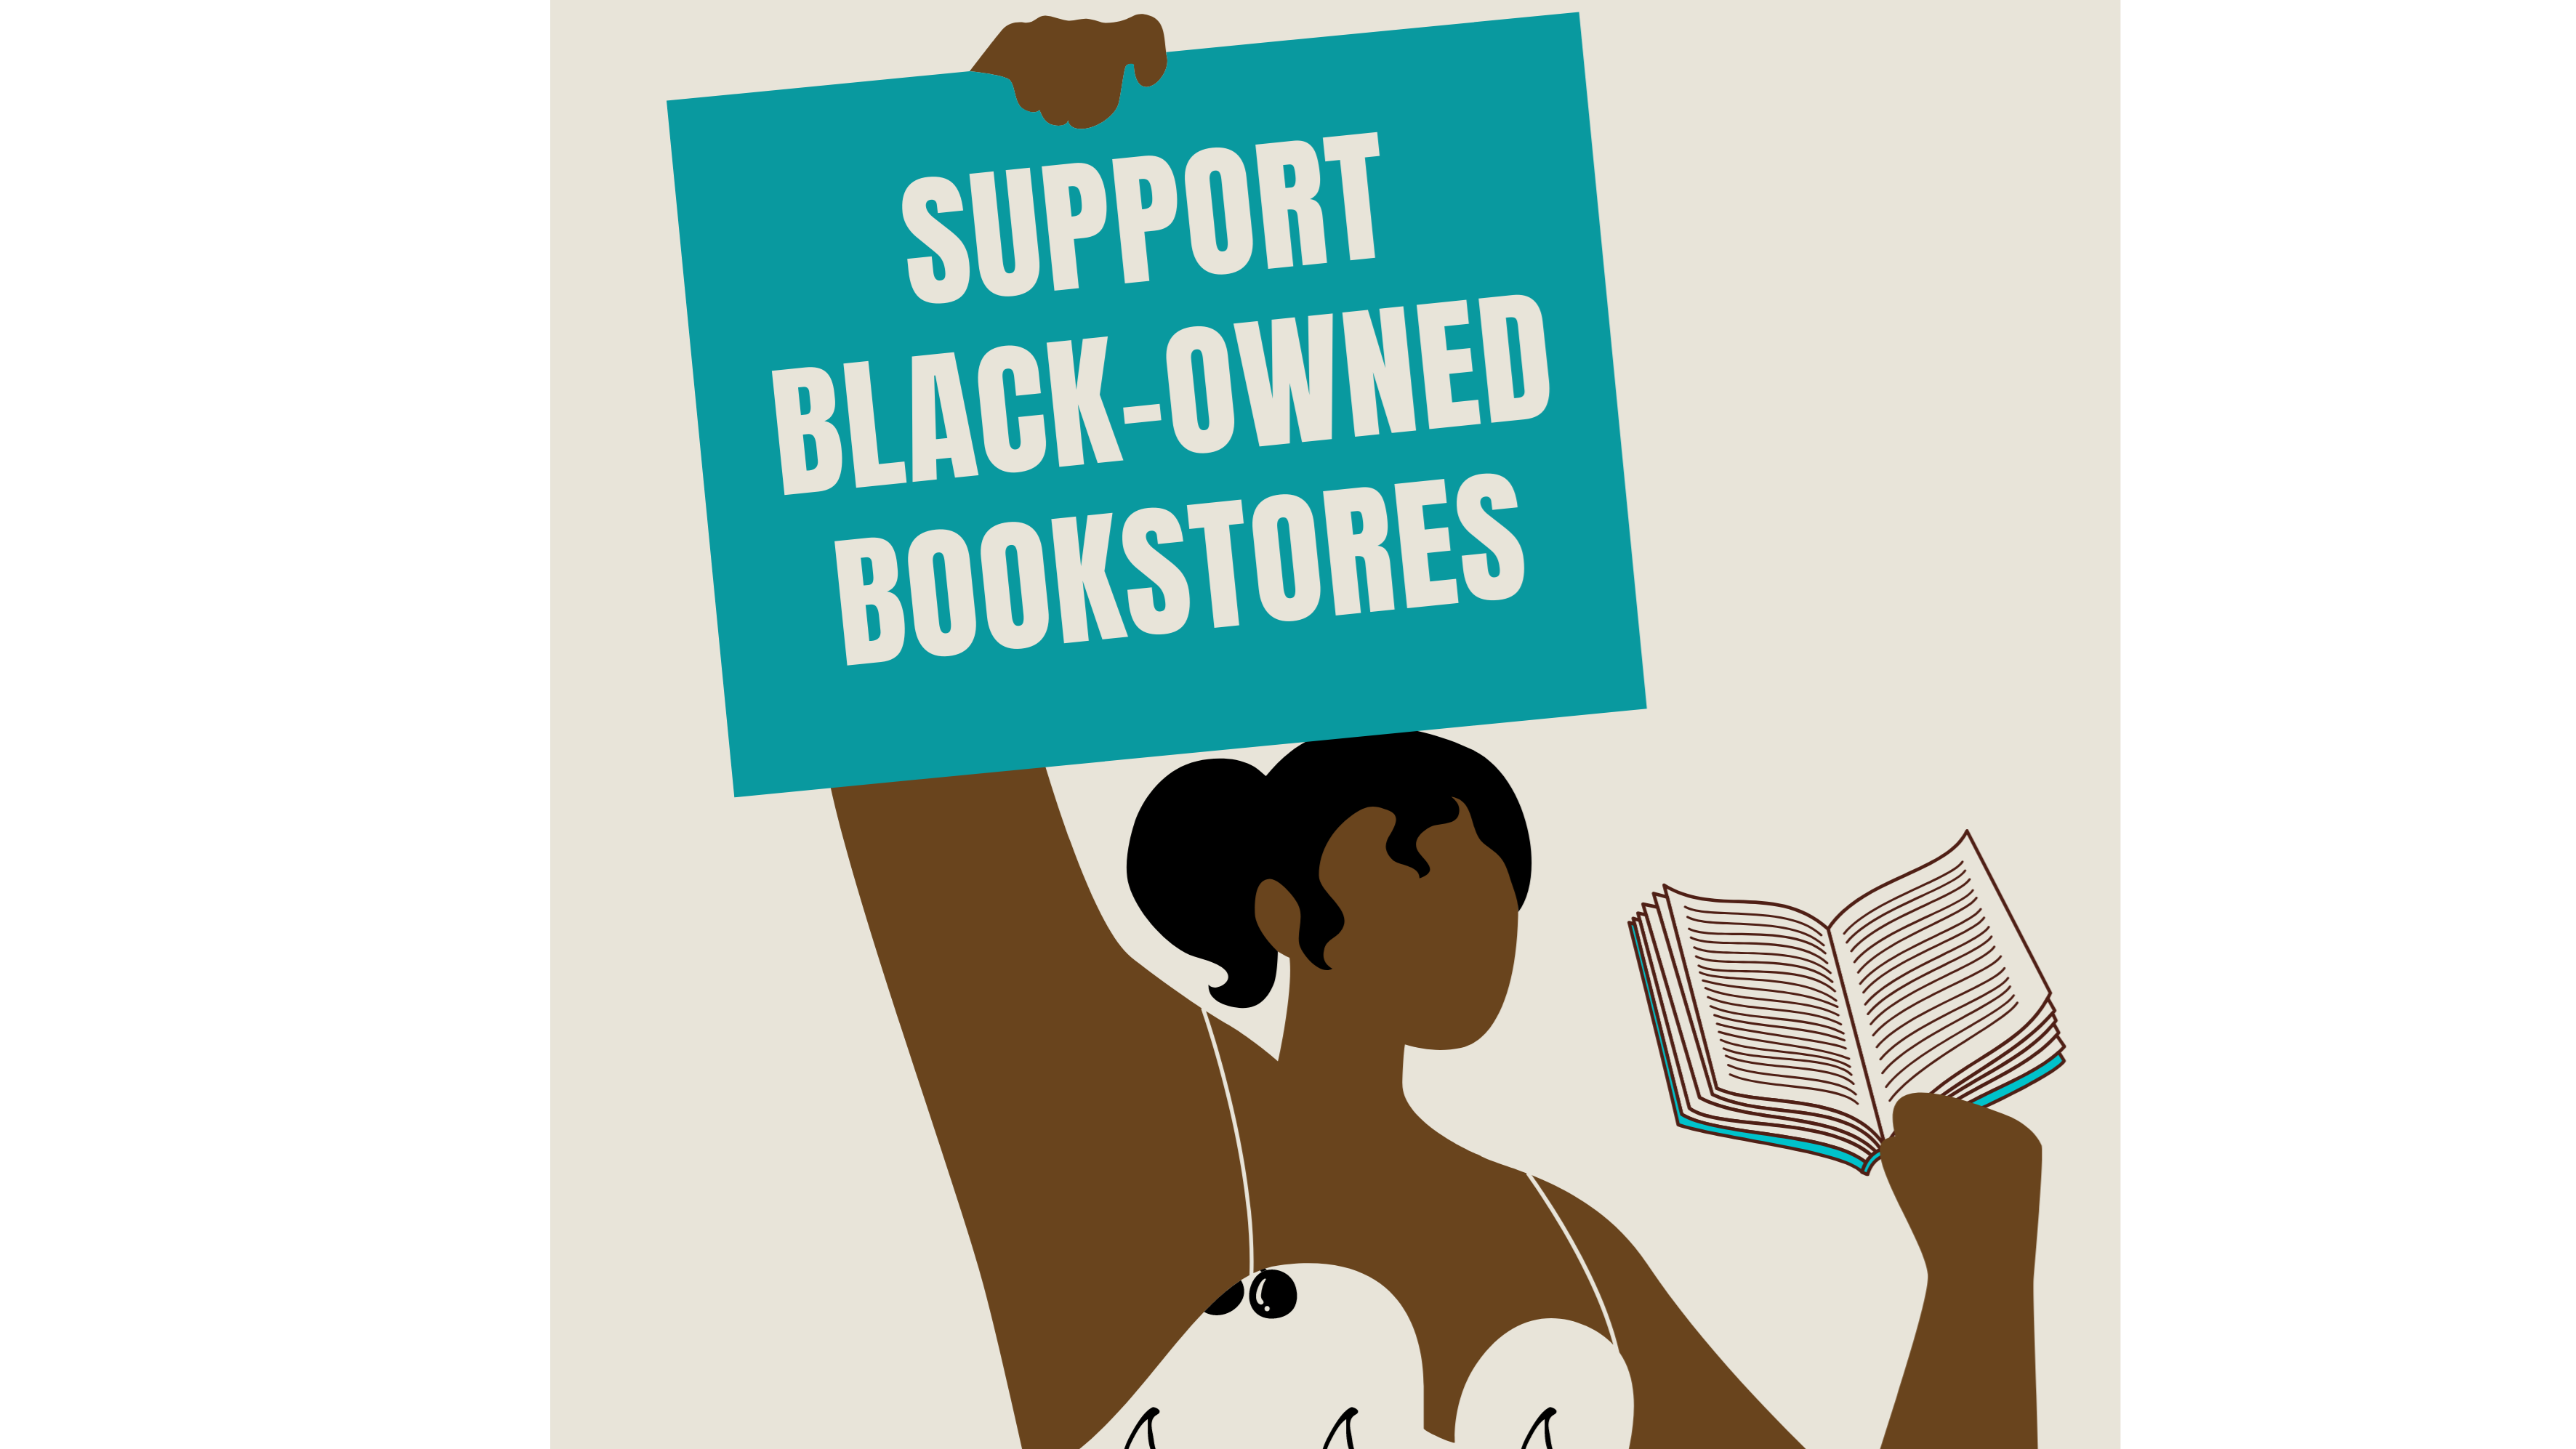 Support Black-Owned Bookstores web